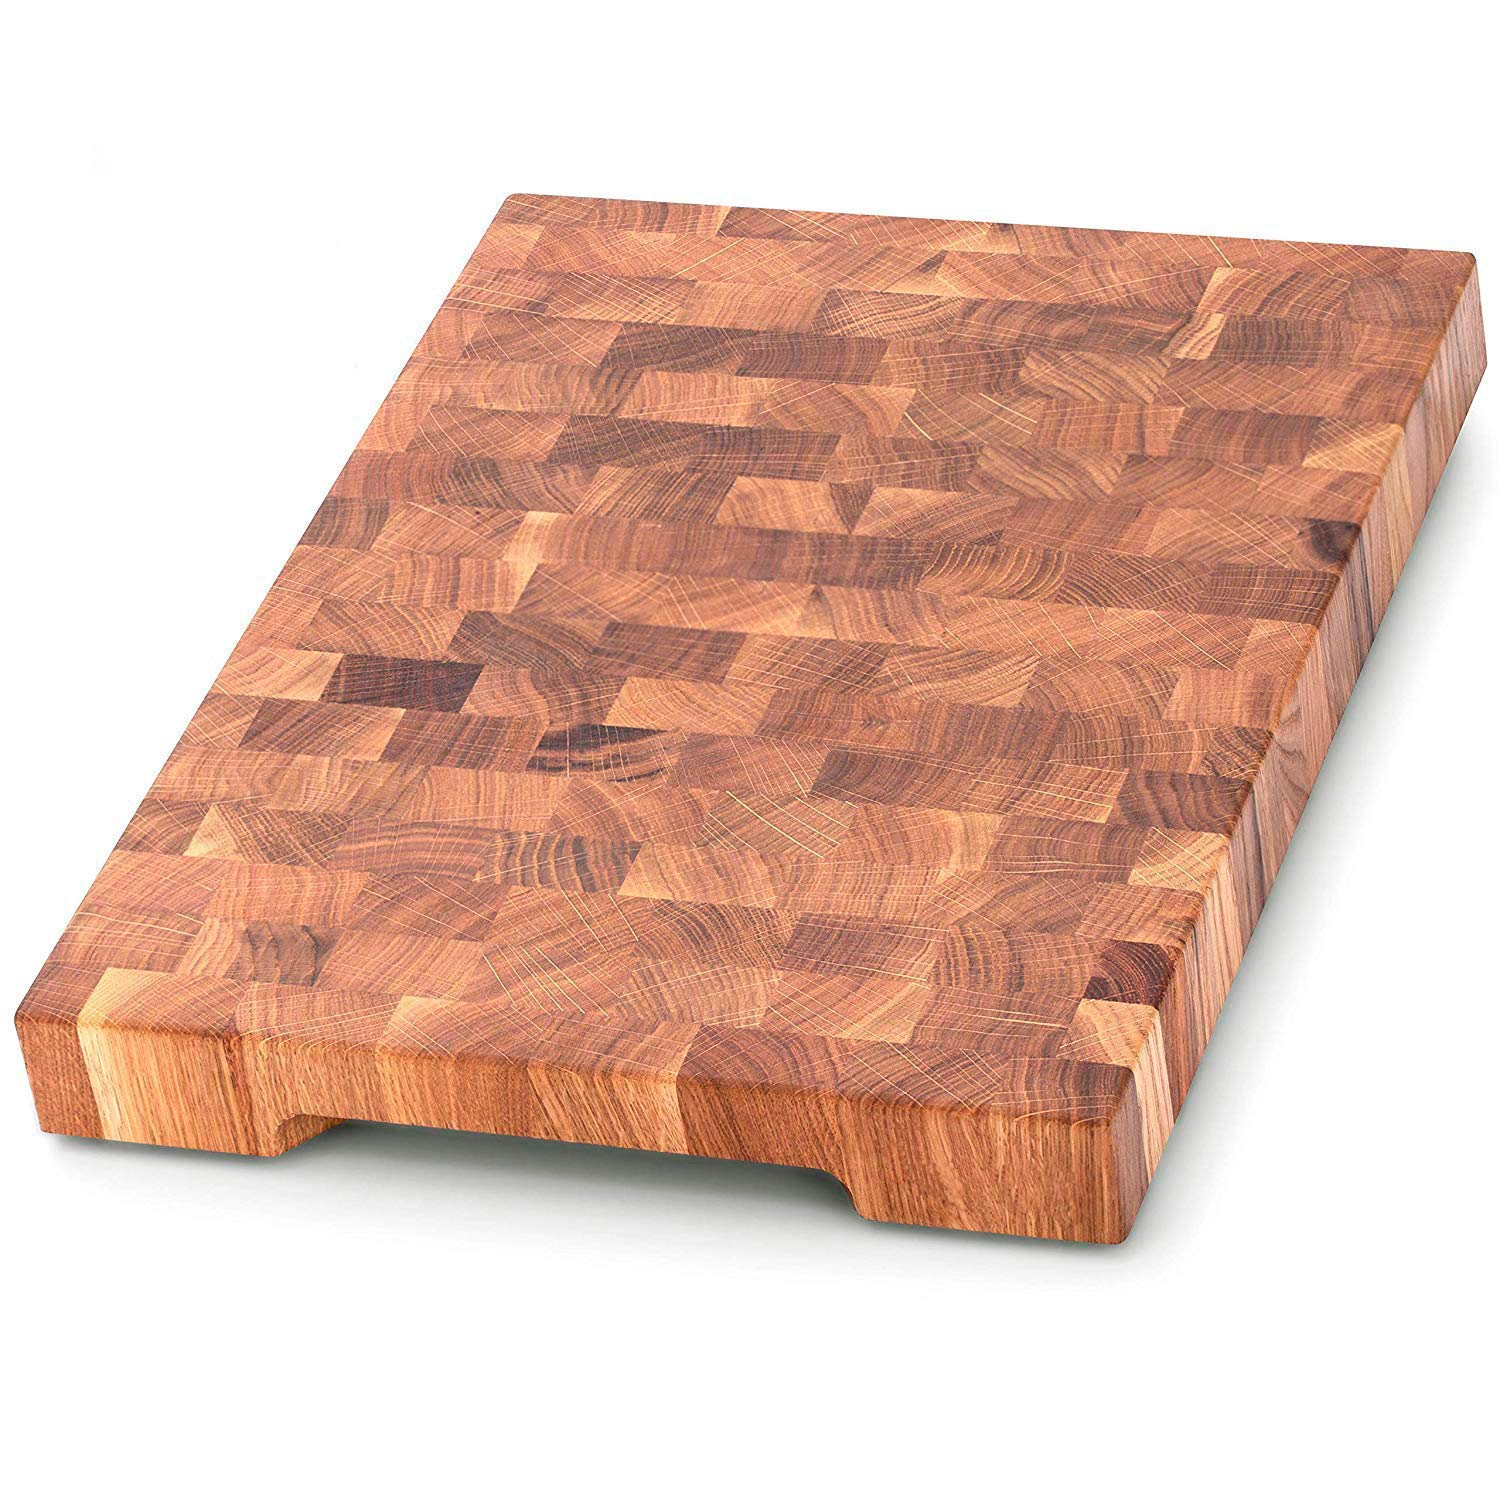 End Grain Wood cutting board - Wood Chopping block - Large cutting board 16 x 12 Kitchen butcher block Antibacterial Oak cutting board non slip cutting board with feet - Kitchen Wooden chopping board